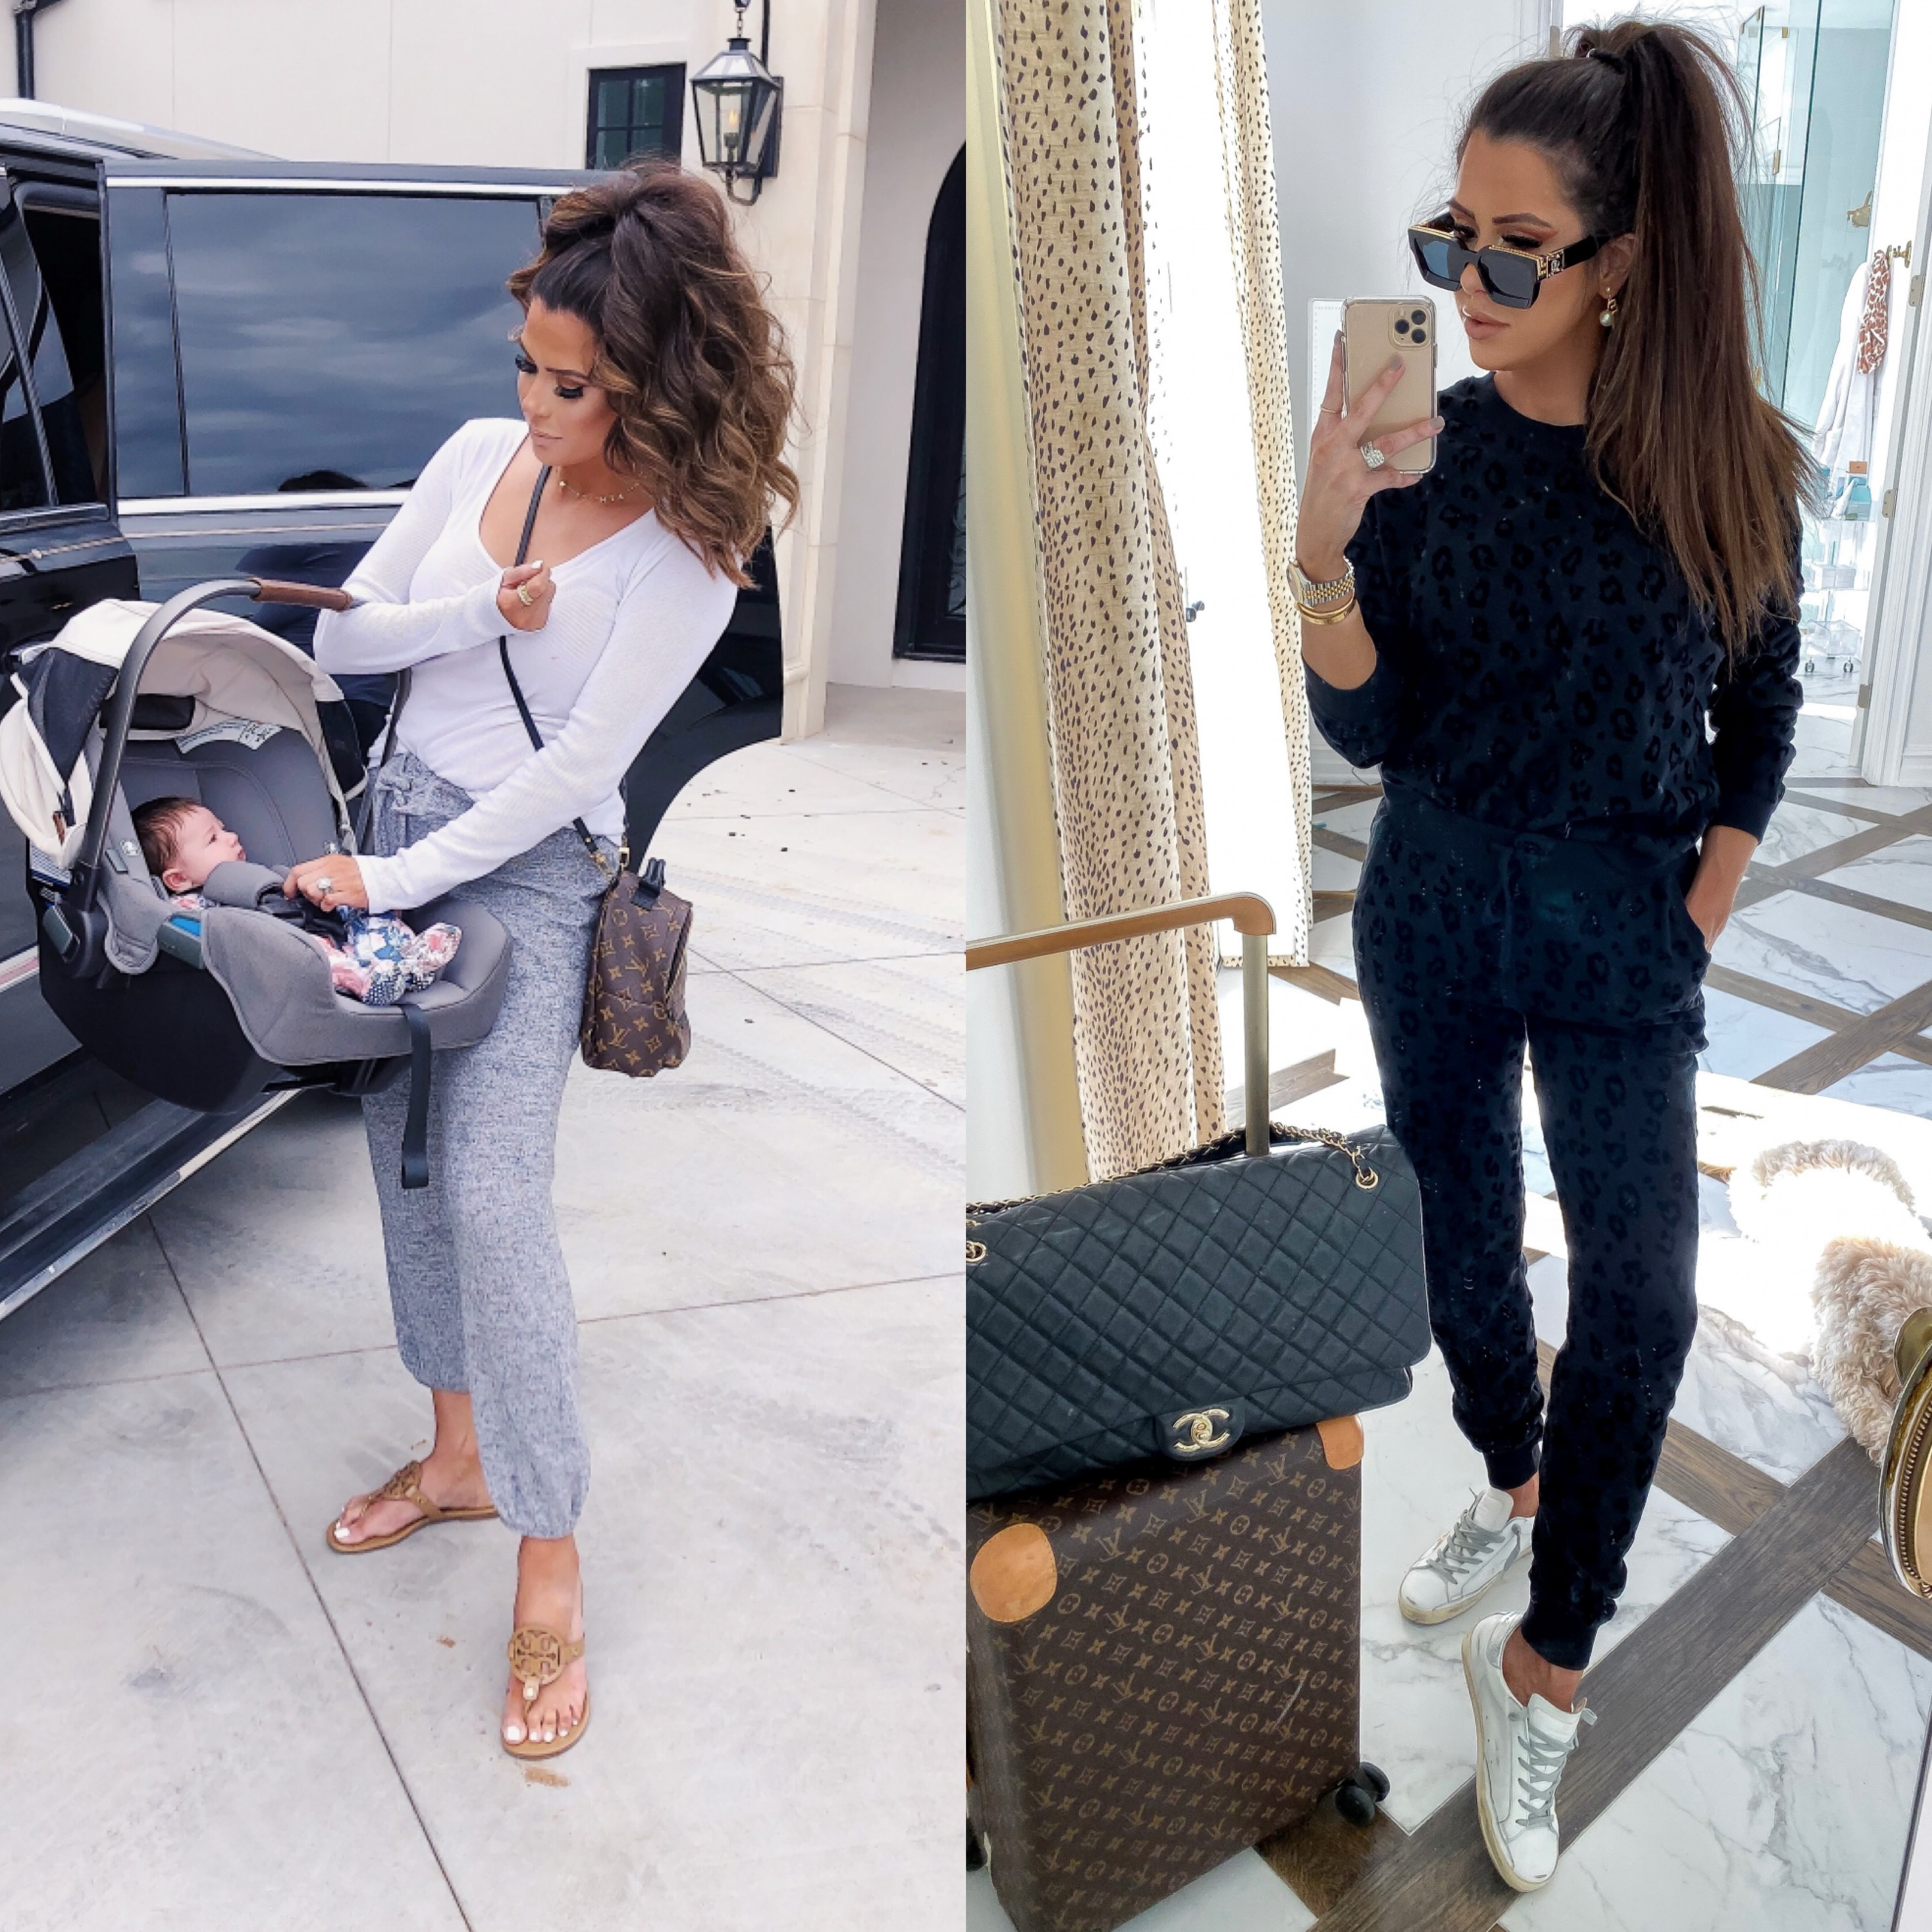 best of loungewear 2019 | best athletic leggings lululemon, zella, spanx review | Best Wardrobe Essentials 2019👖 | Part 2 by popular US fashion blog, The Sweetest Thing: collage image of a woman wearing ShopBop ZSupply loungewear, Buddy Love loungewear, and Nordstrom BP loungewear.